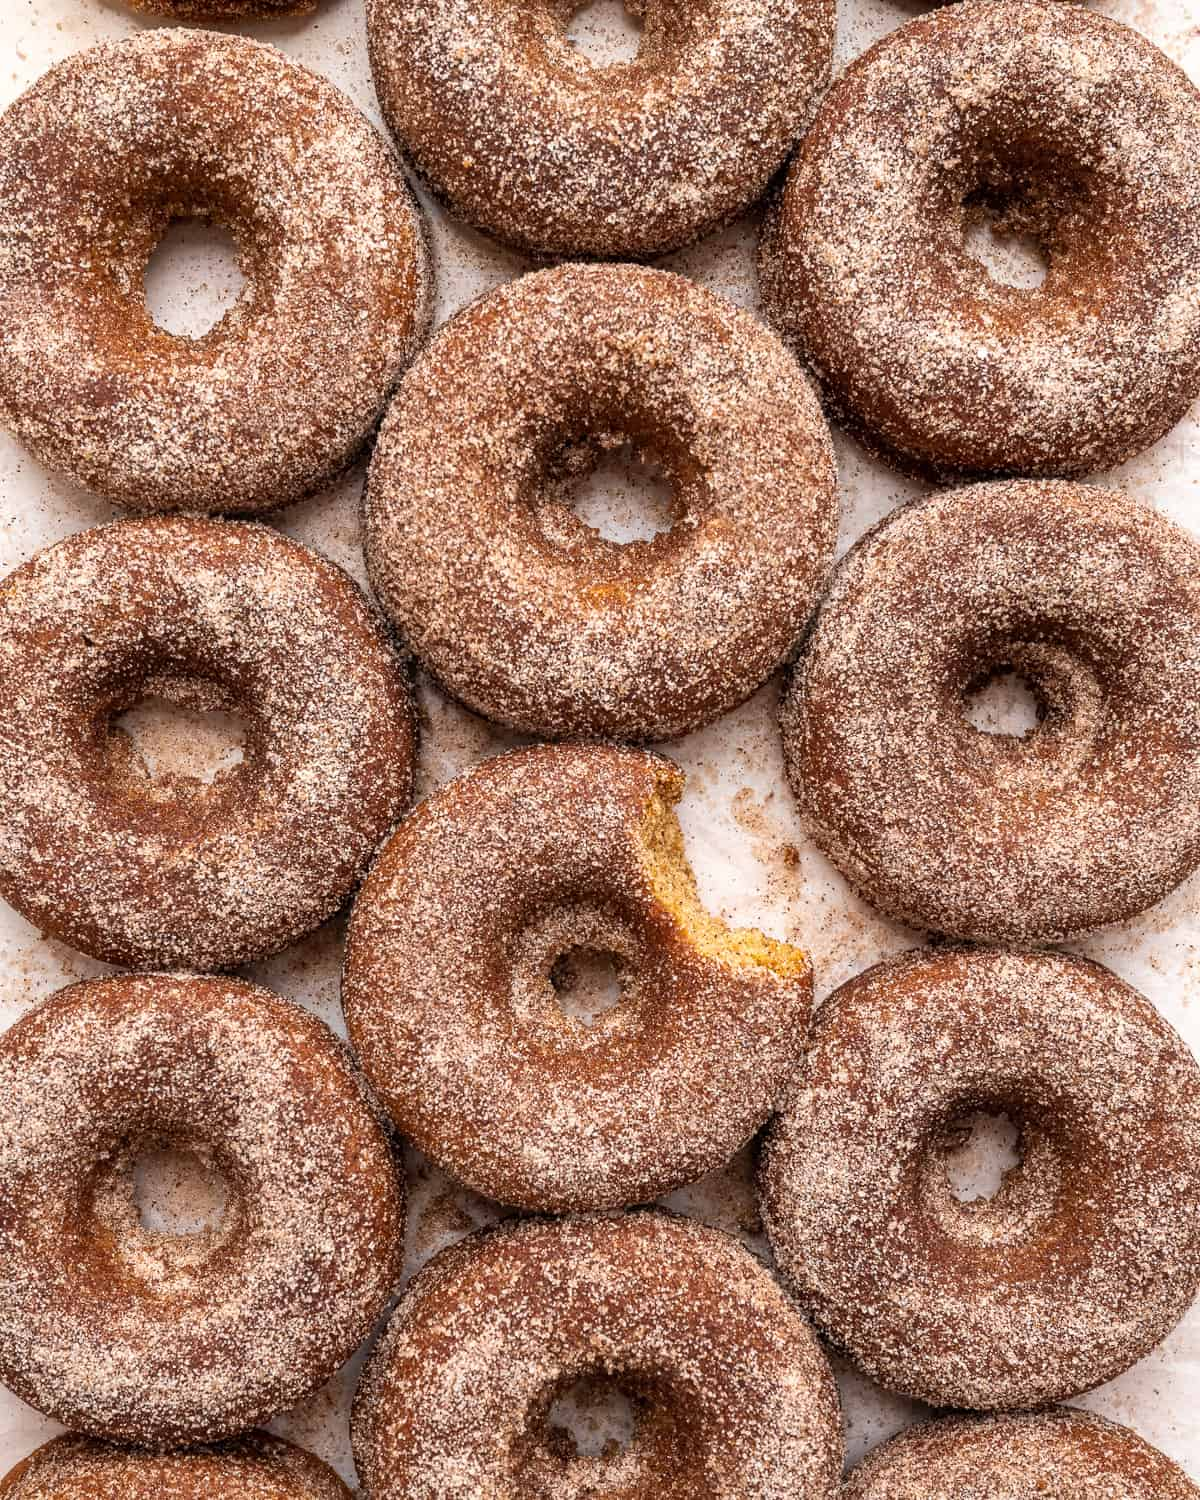 apple cider donuts lined up next to each other on parchment paper.